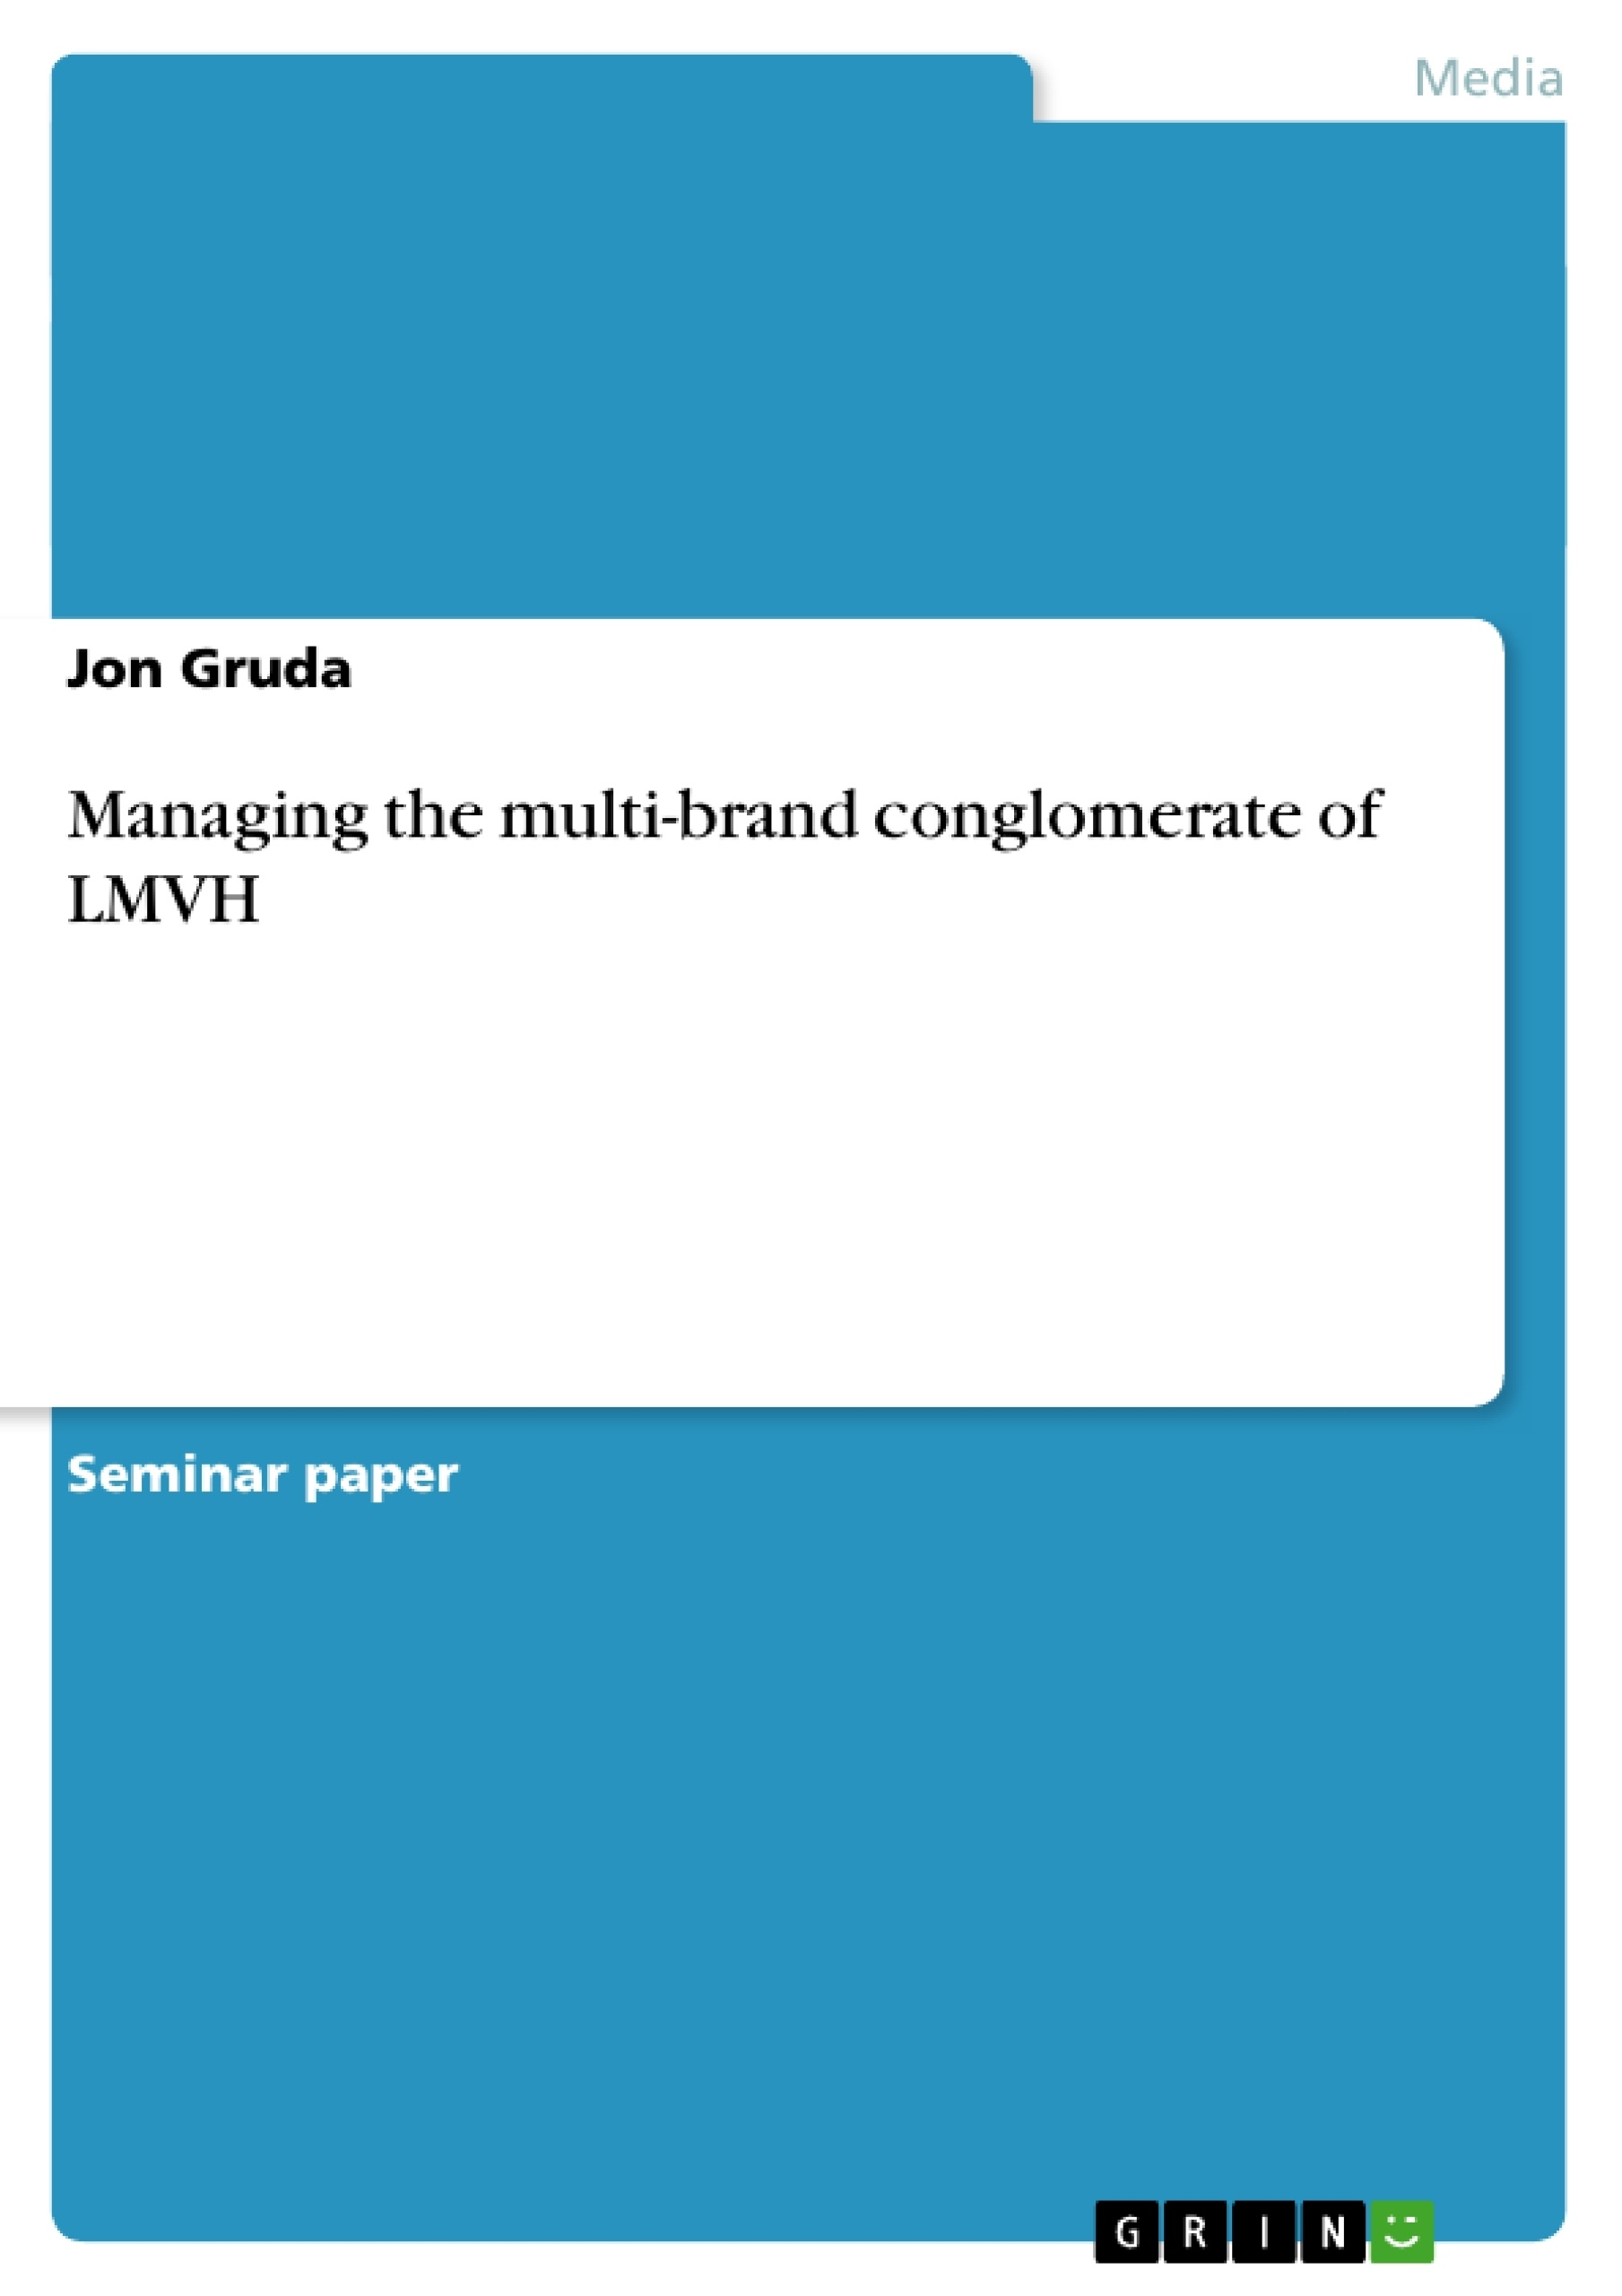 Title: Managing the multi-brand conglomerate of LMVH